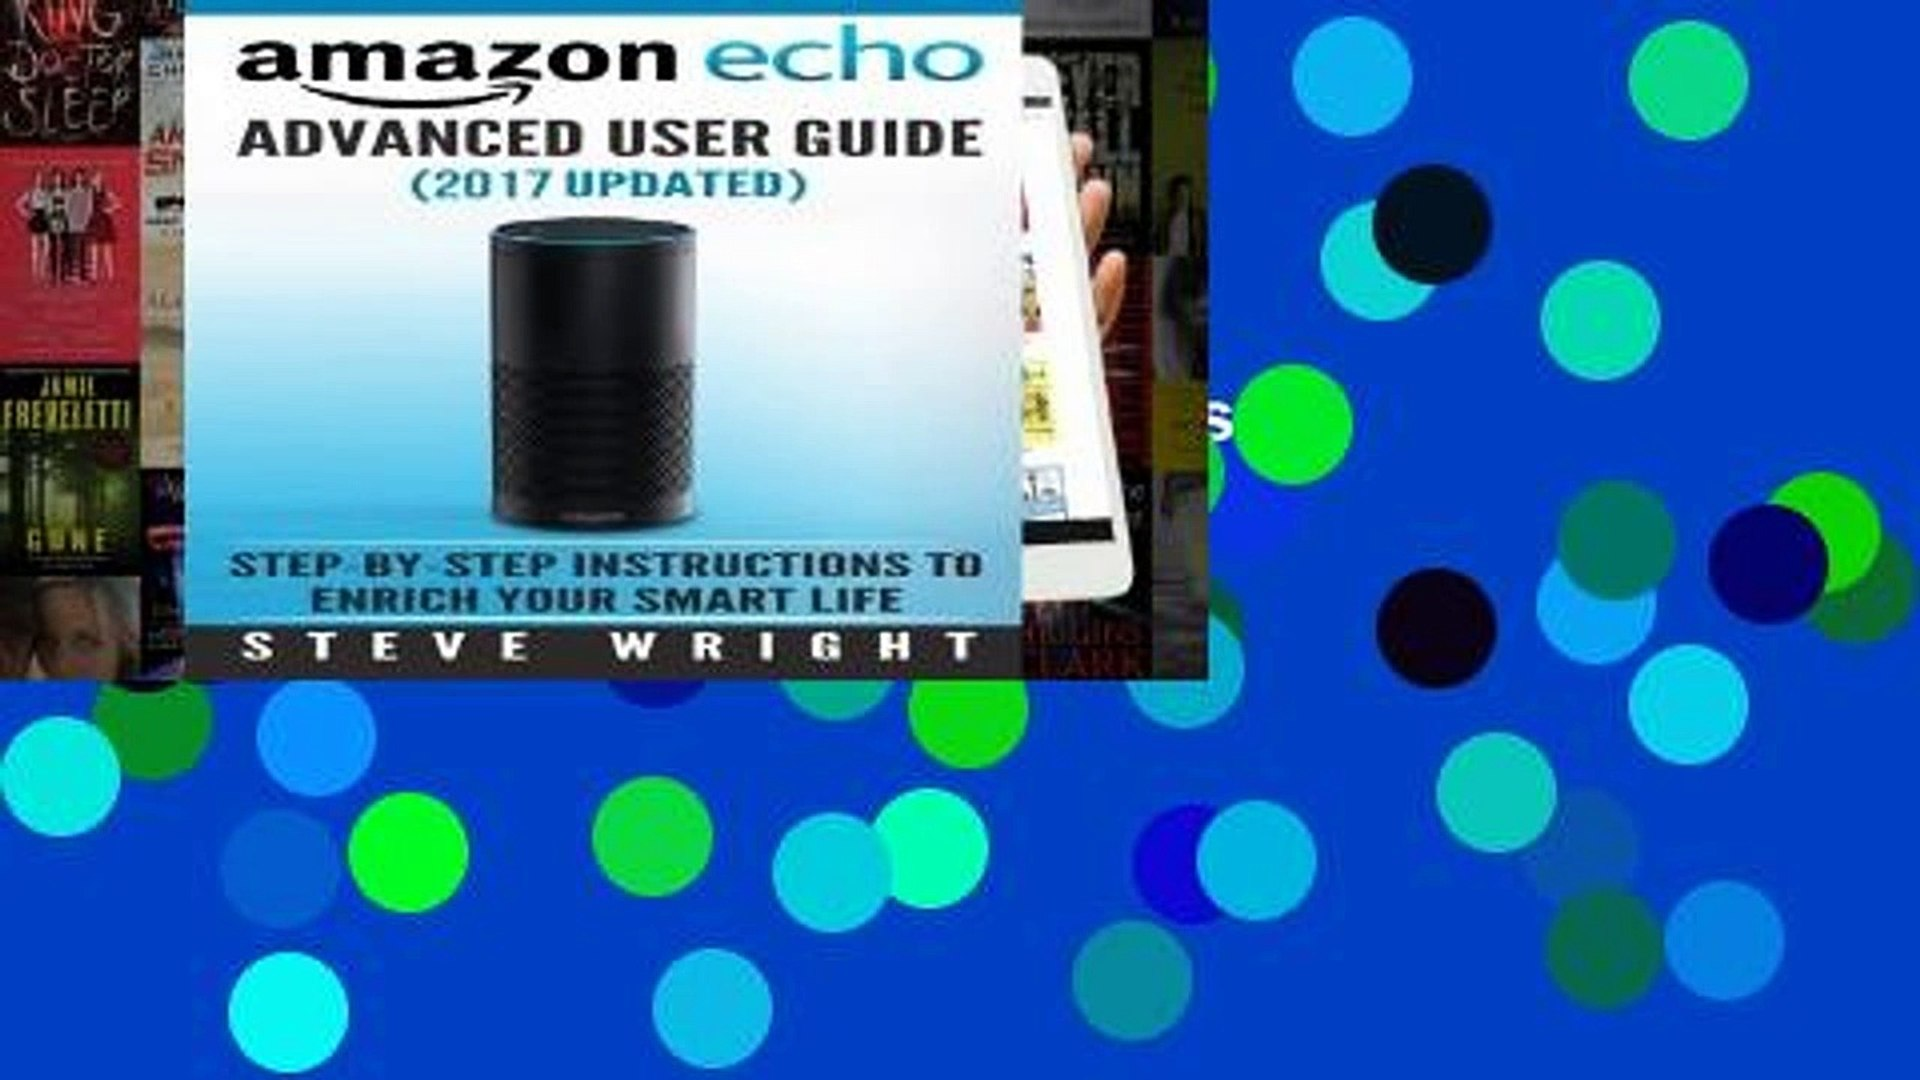 D.O.W.N.L.O.A.D [P.D.F] Amazon Echo: Amazon Echo Advanced User Guide (2017 Updated) : Step-by-Step